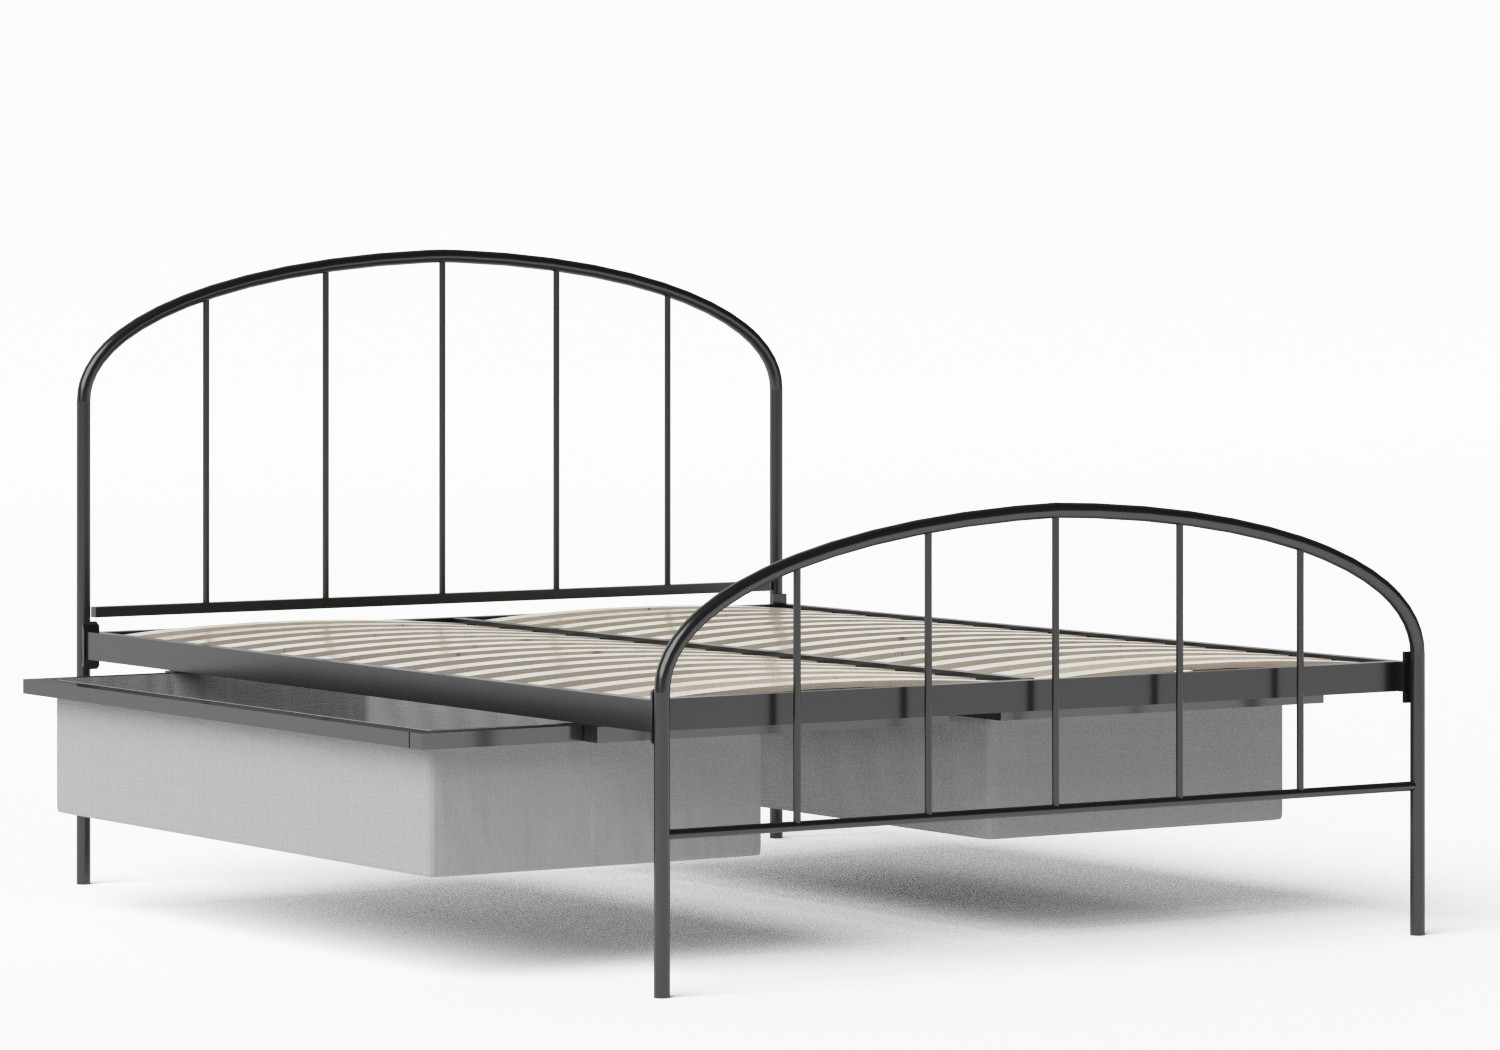 Waldo Iron/Metal Bed in Satin Black shown with underbed storage